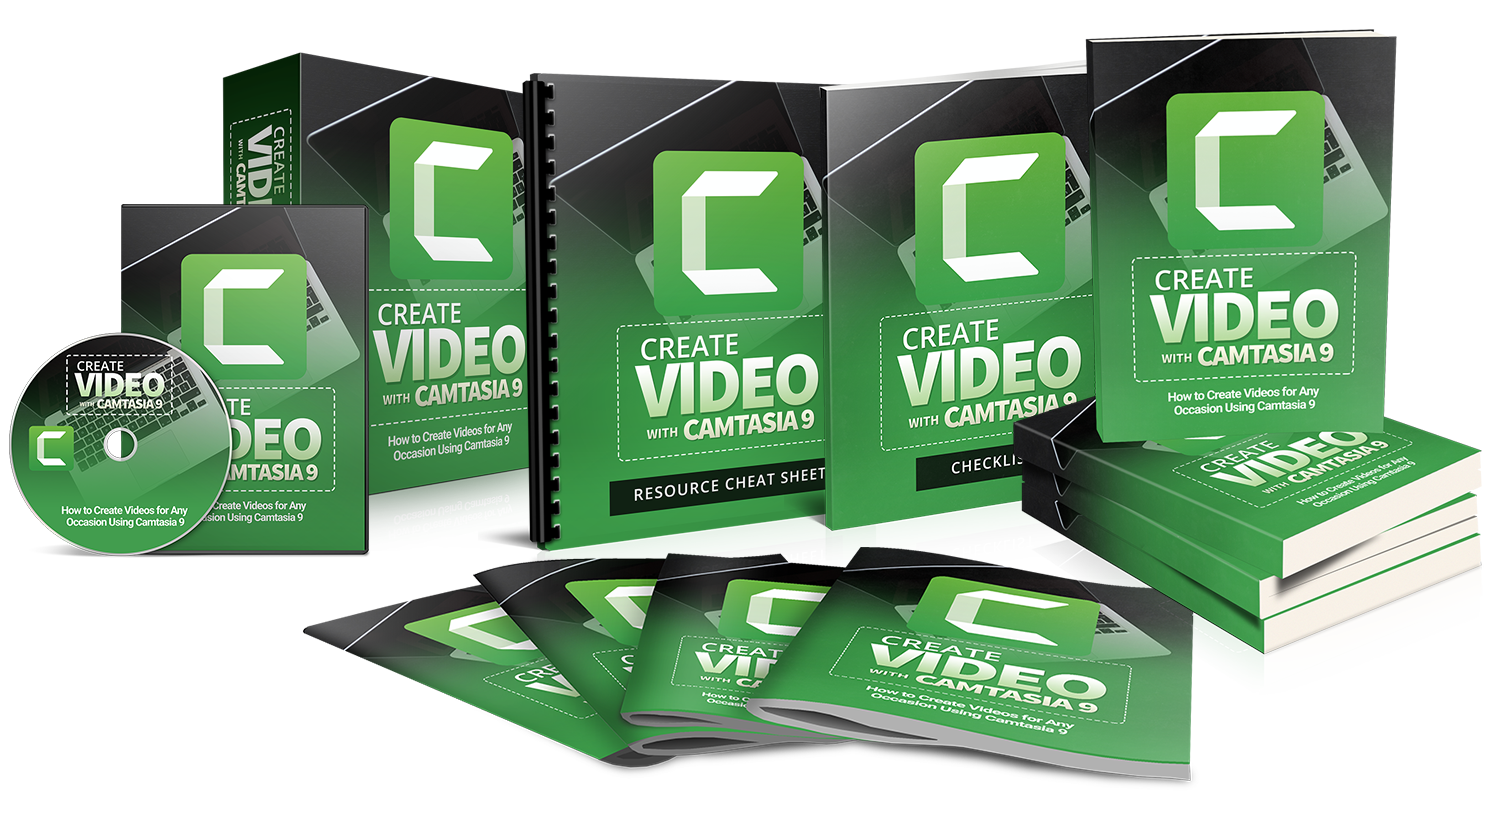 Camtasia 9 PLR Video Tutorial